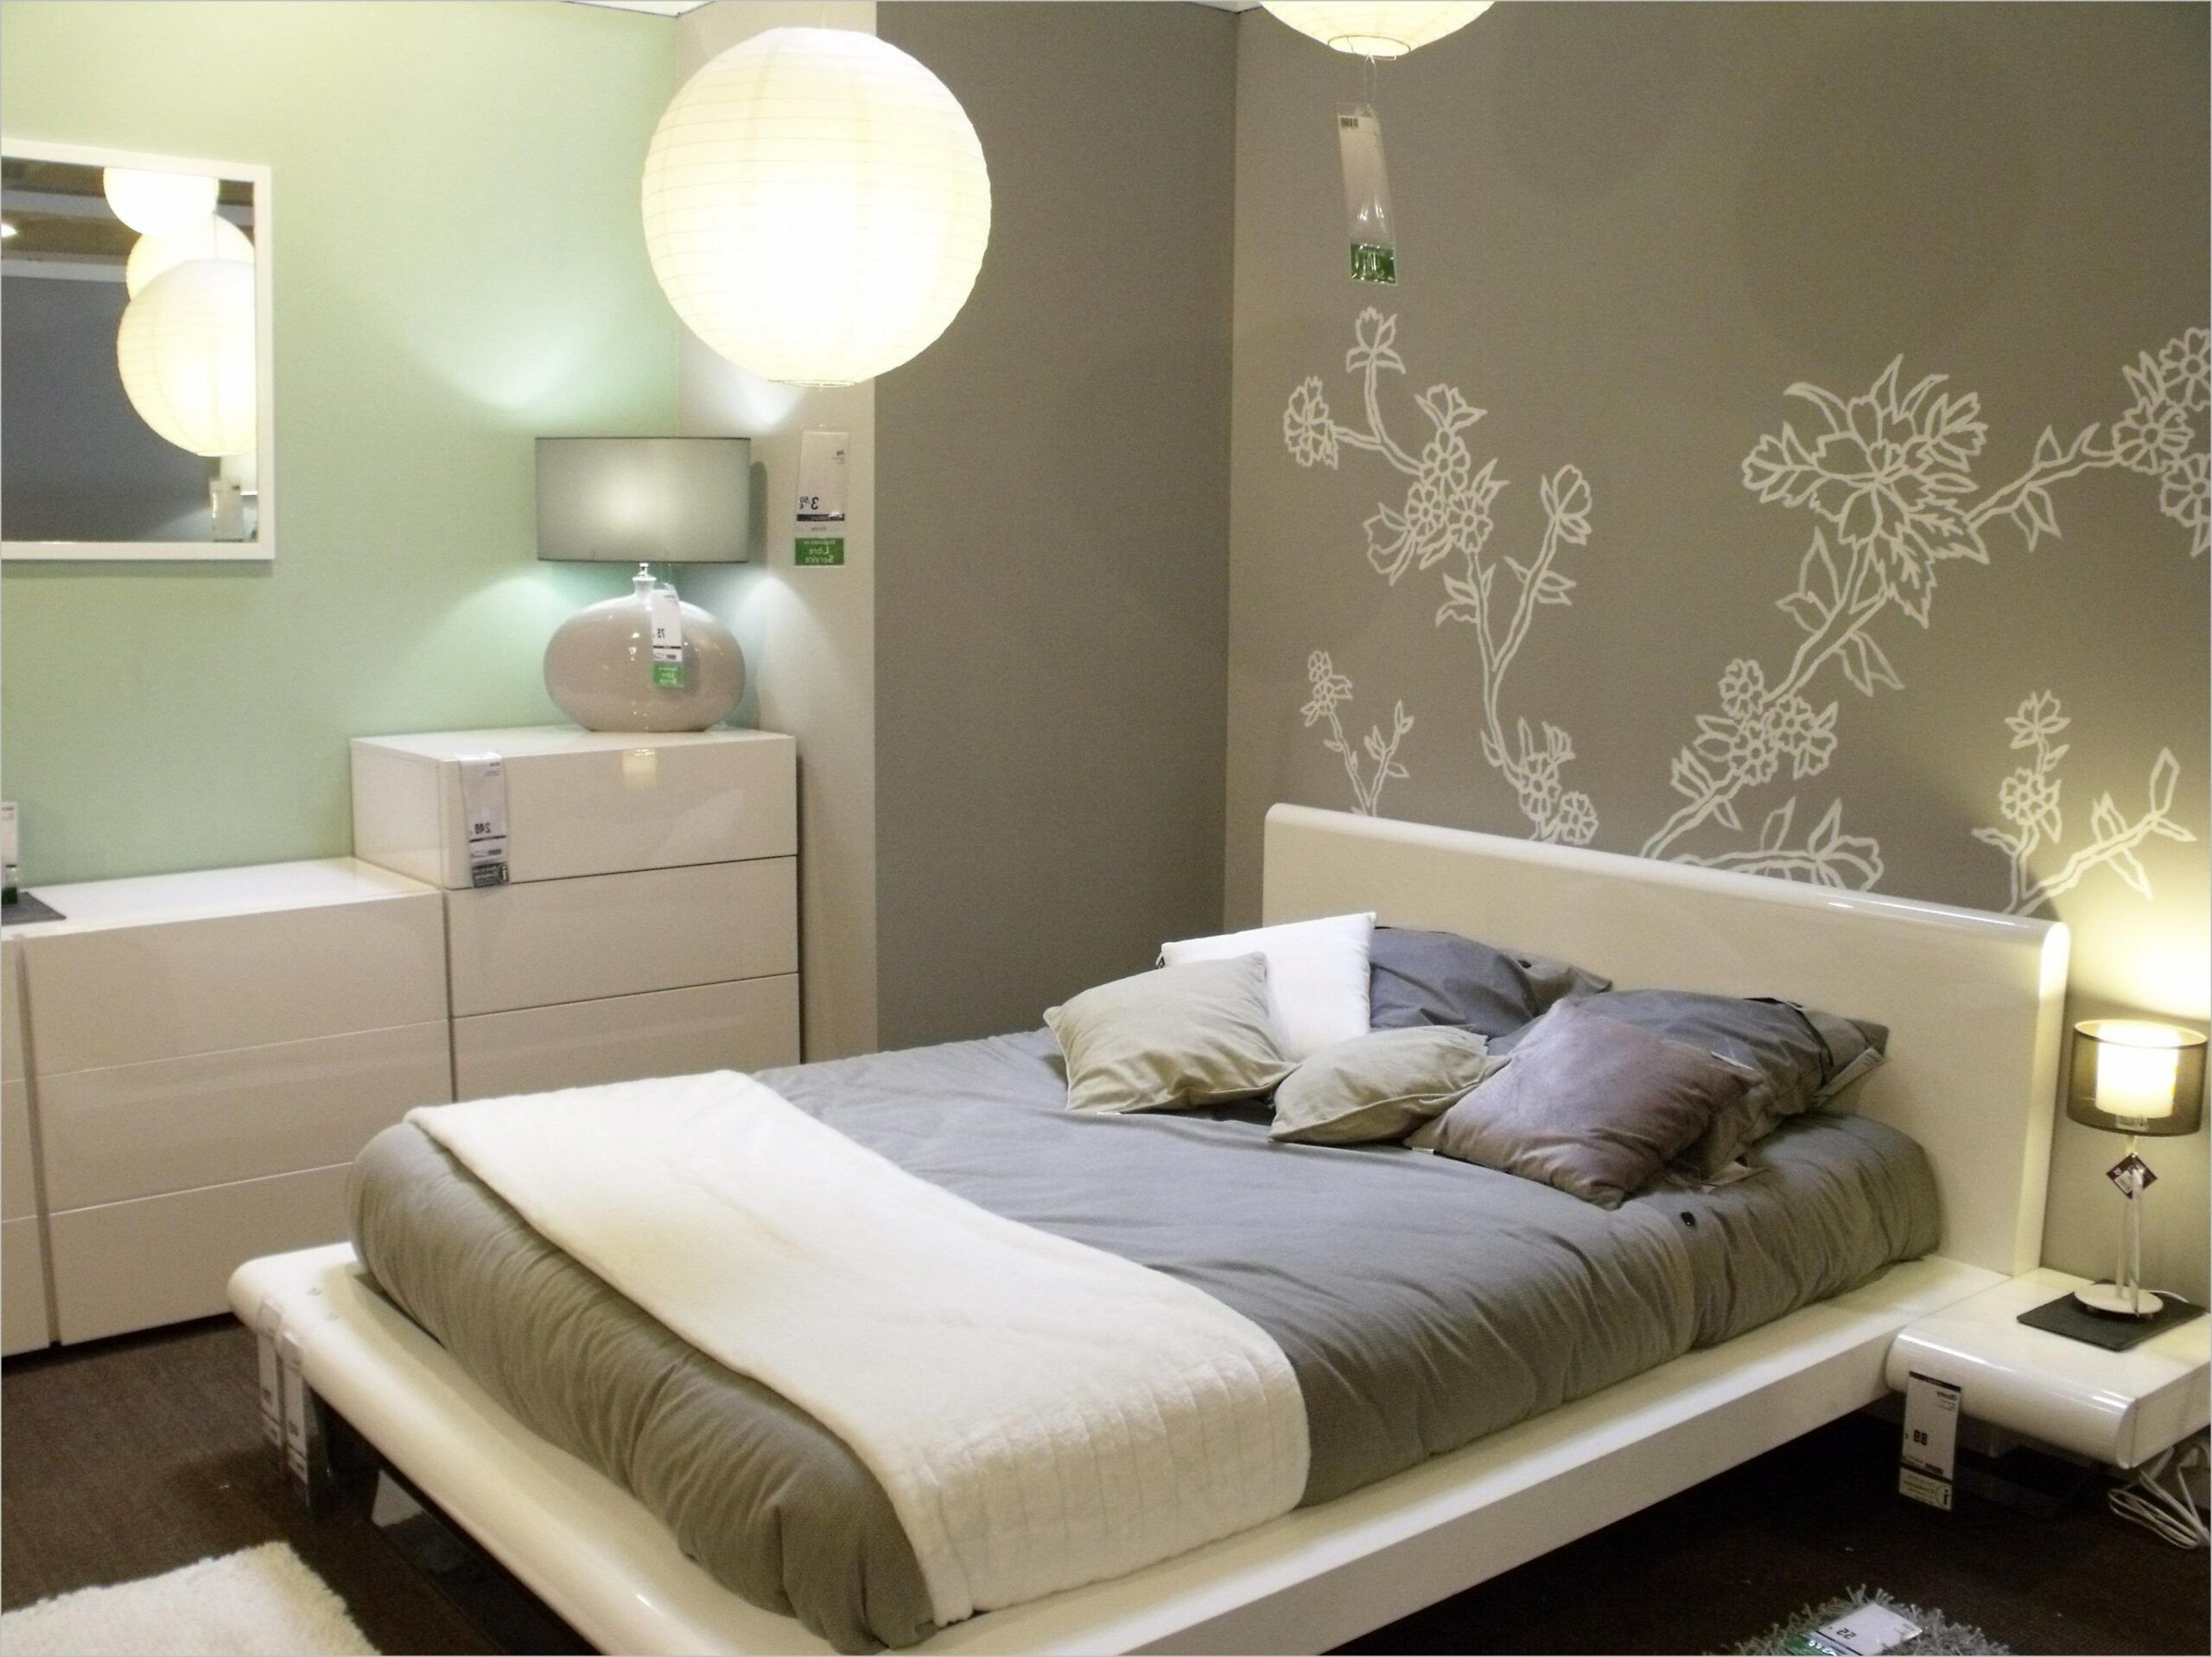 Deco Chambre Avec Lit Gris In 2020 Italian Bedroom Furniture